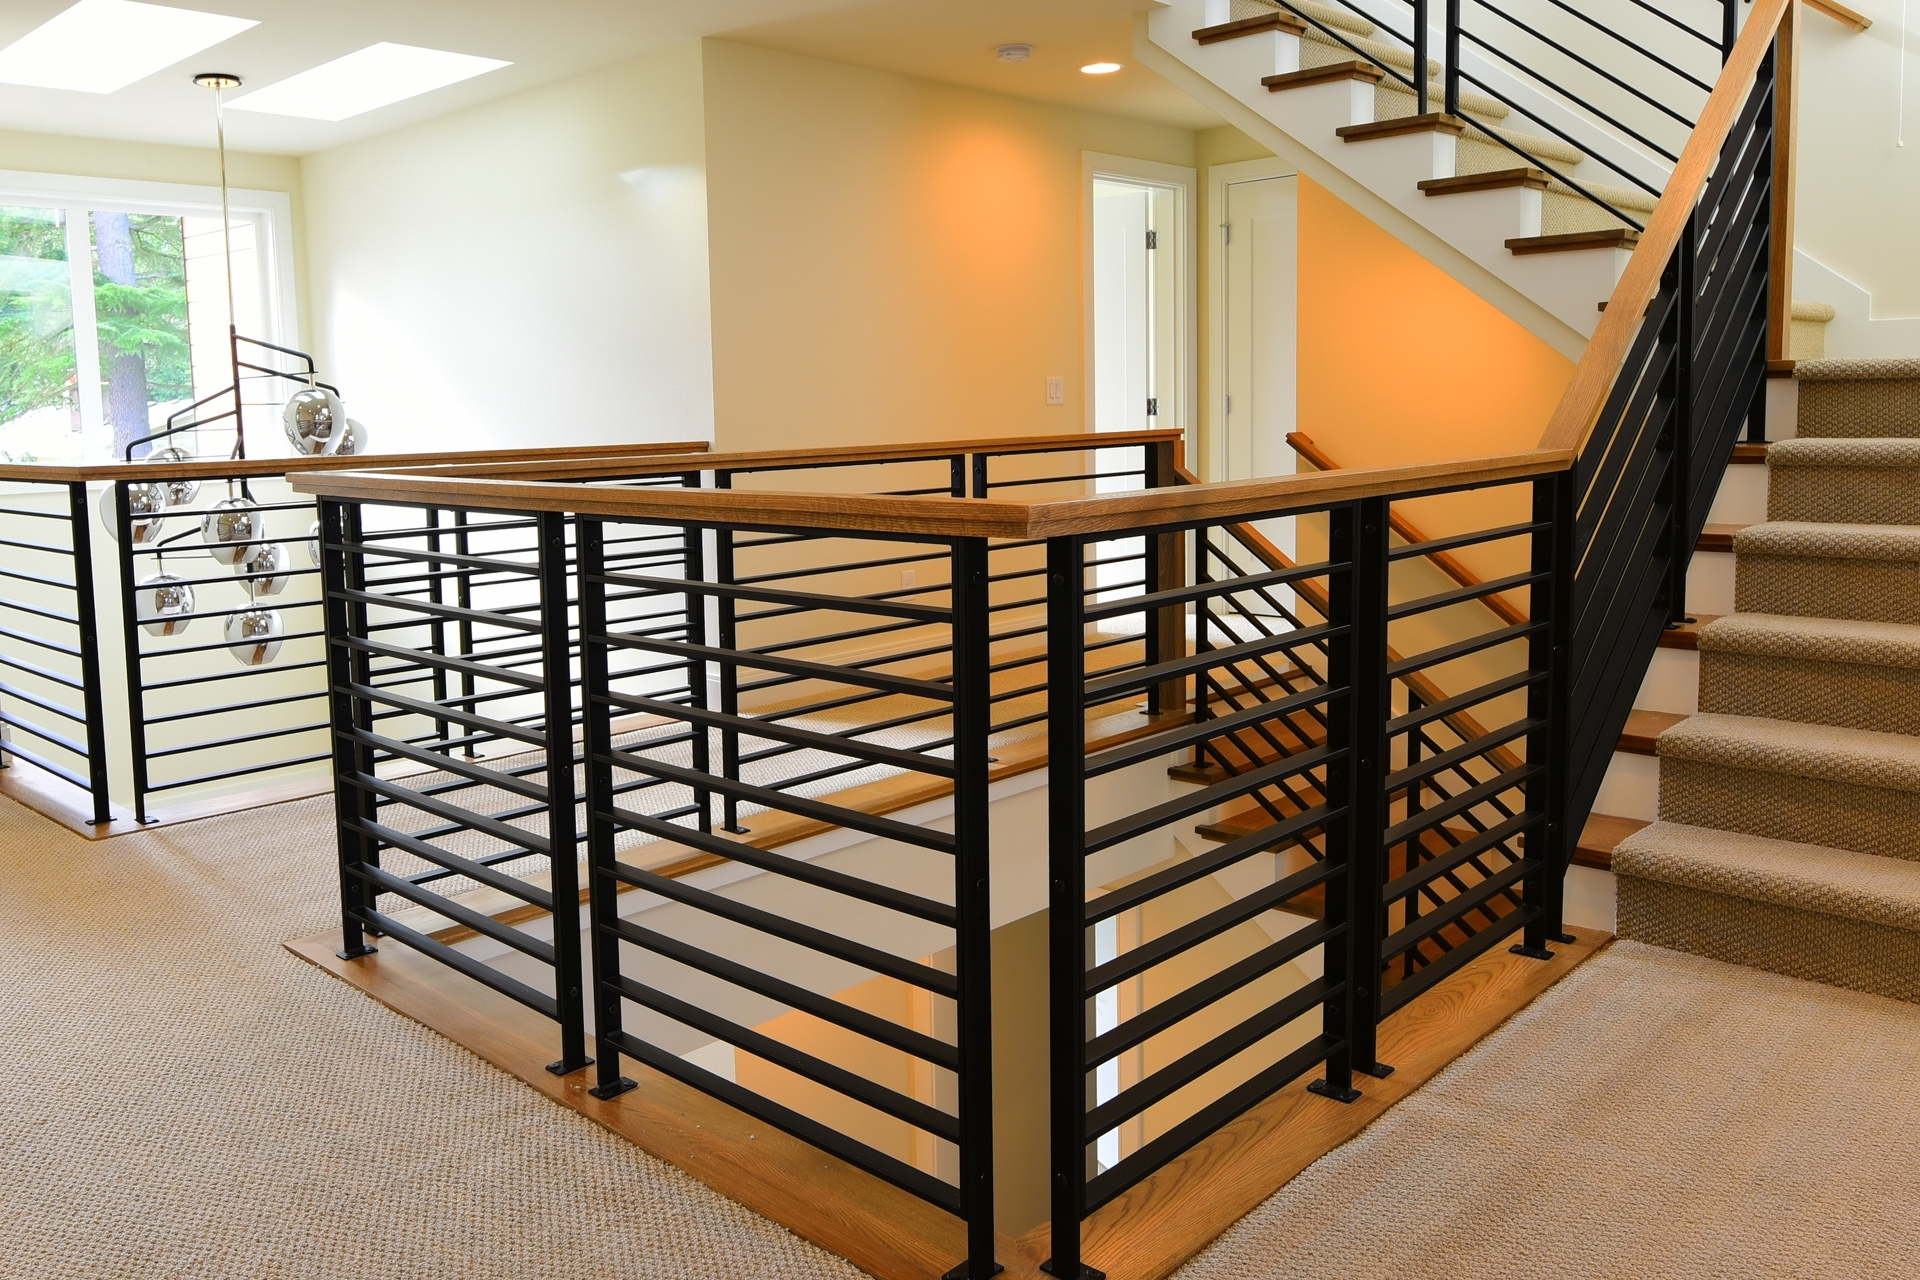 Stair Systems Stairs Stair Parts Newels Balusters And | Wooden Hand Railing Designs | Light Wood | Residential Industrial Stair | Wood Panel | Decorative Glass | Scandinavian